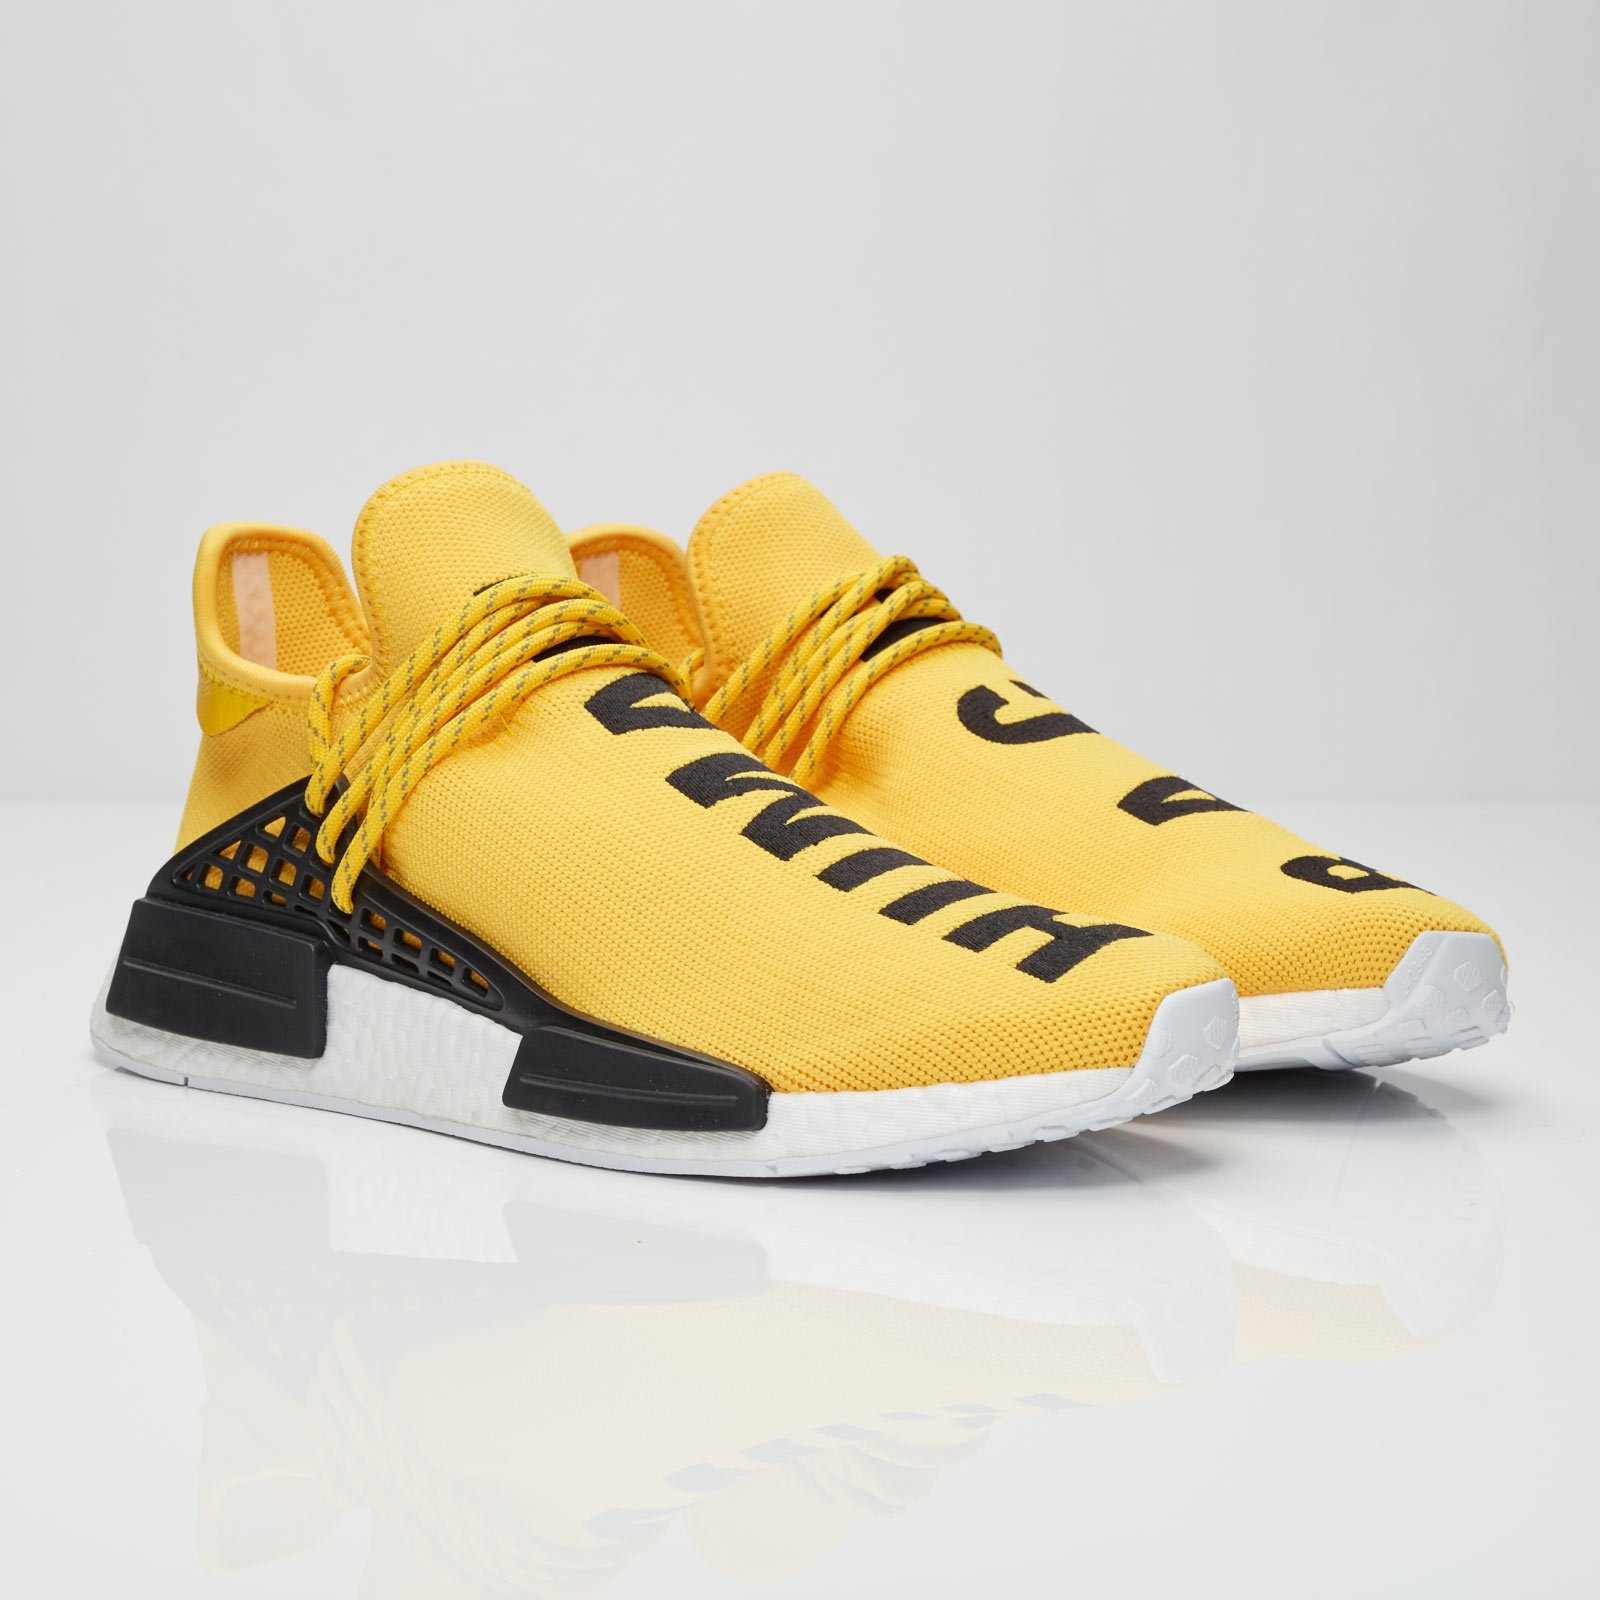 meet 16400 596d4 adidas PW Human Race NMD - Bb0619 - Sneakersnstuff ...